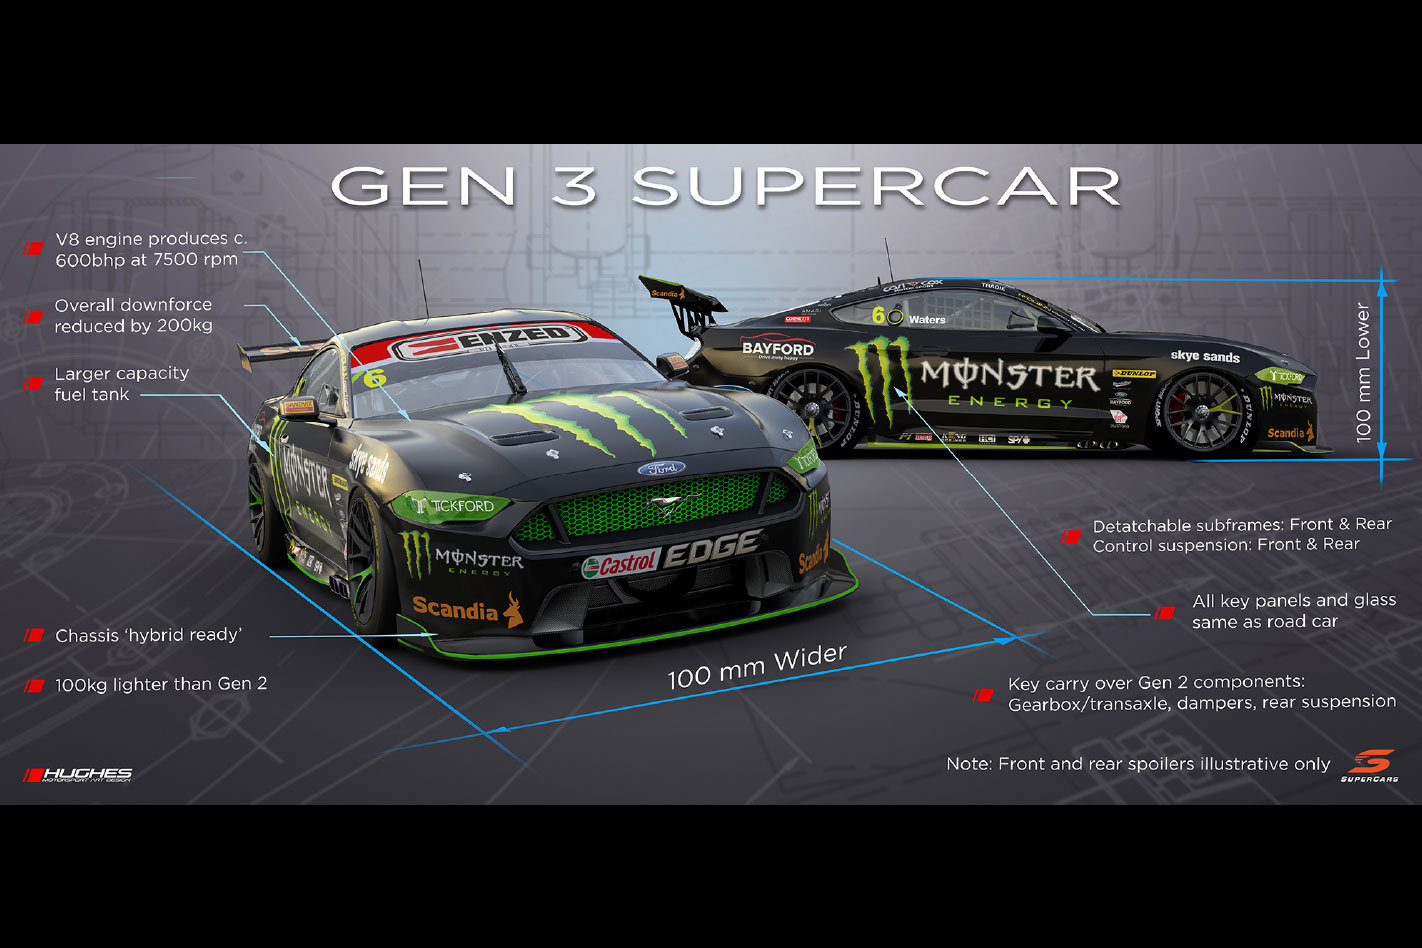 Gen3 Supercars V8 rules